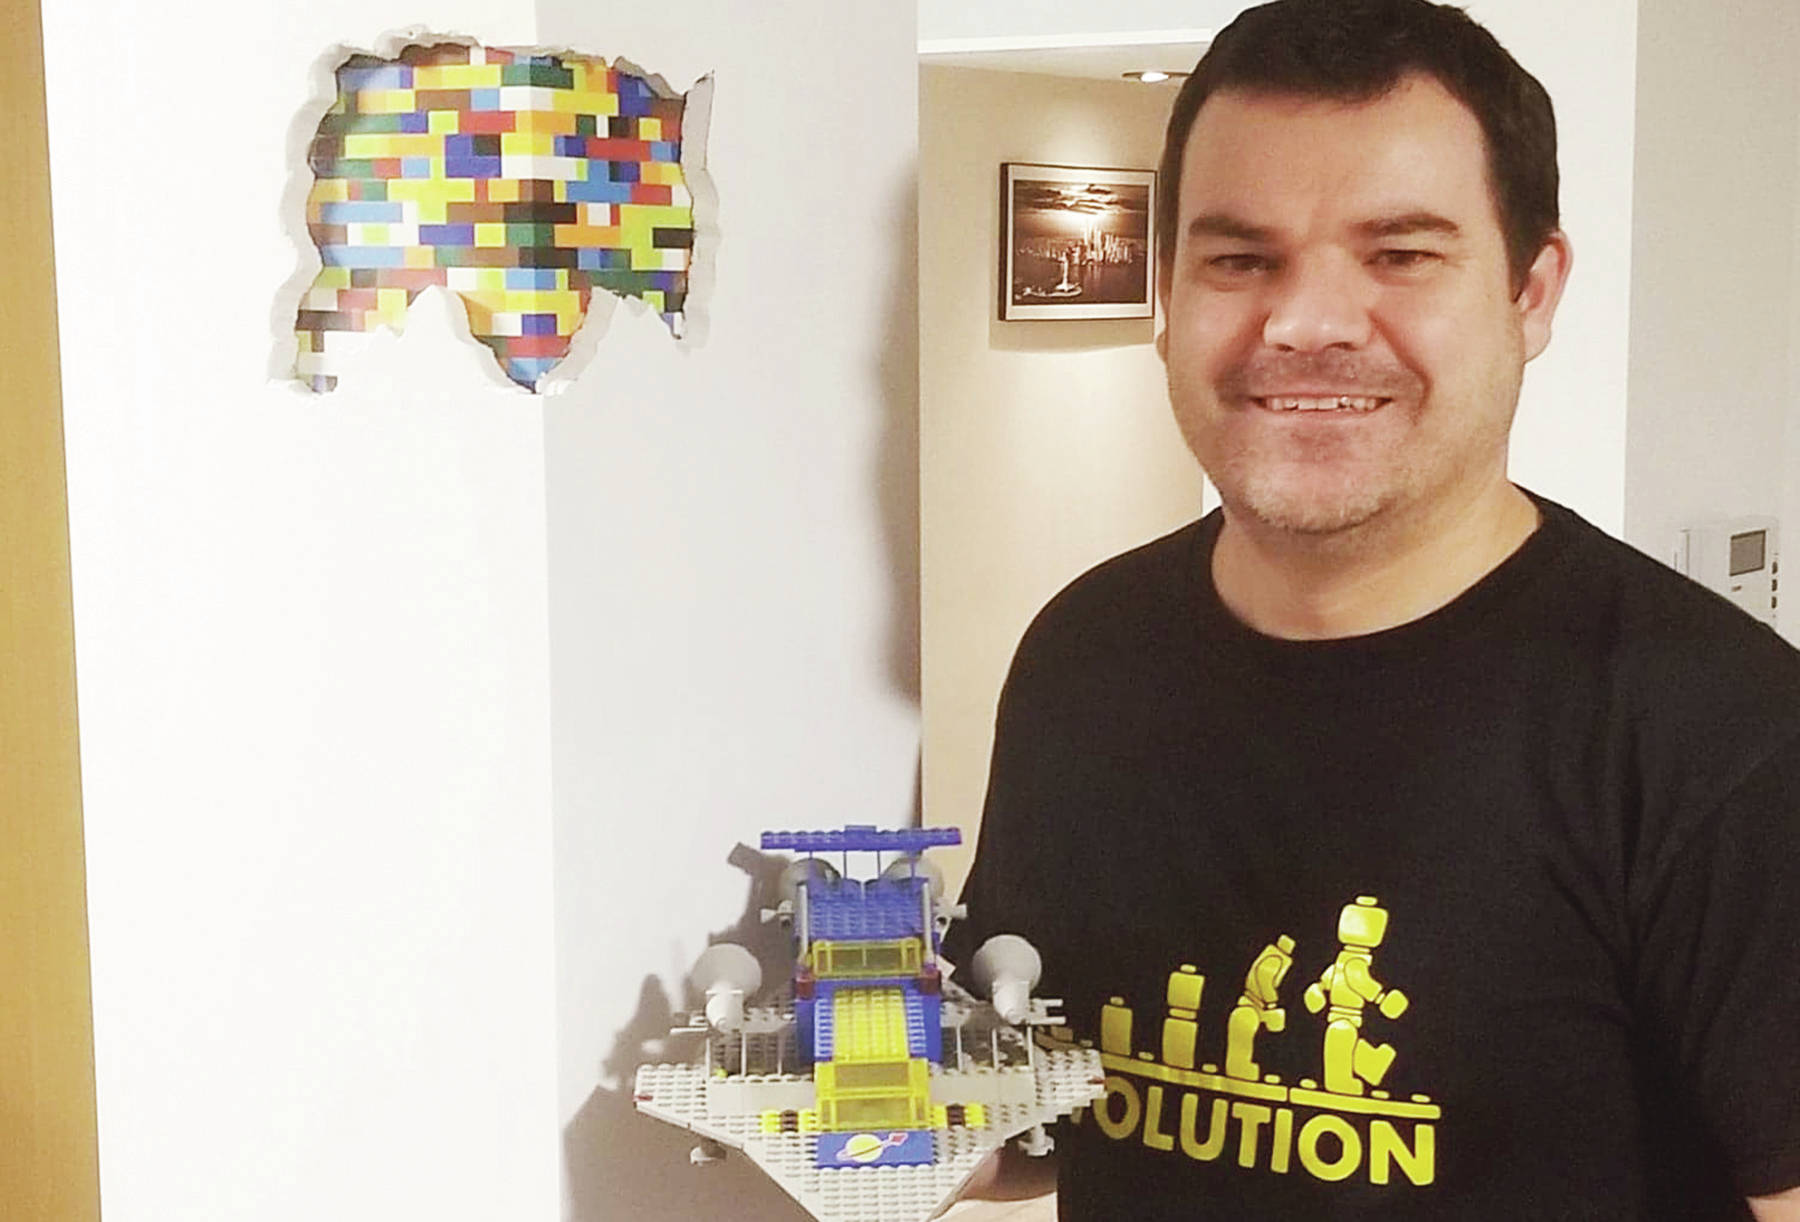 Neal Dangerfield got the idea for his Lego post — which has about 1,000 bricks — from a YouTube video.